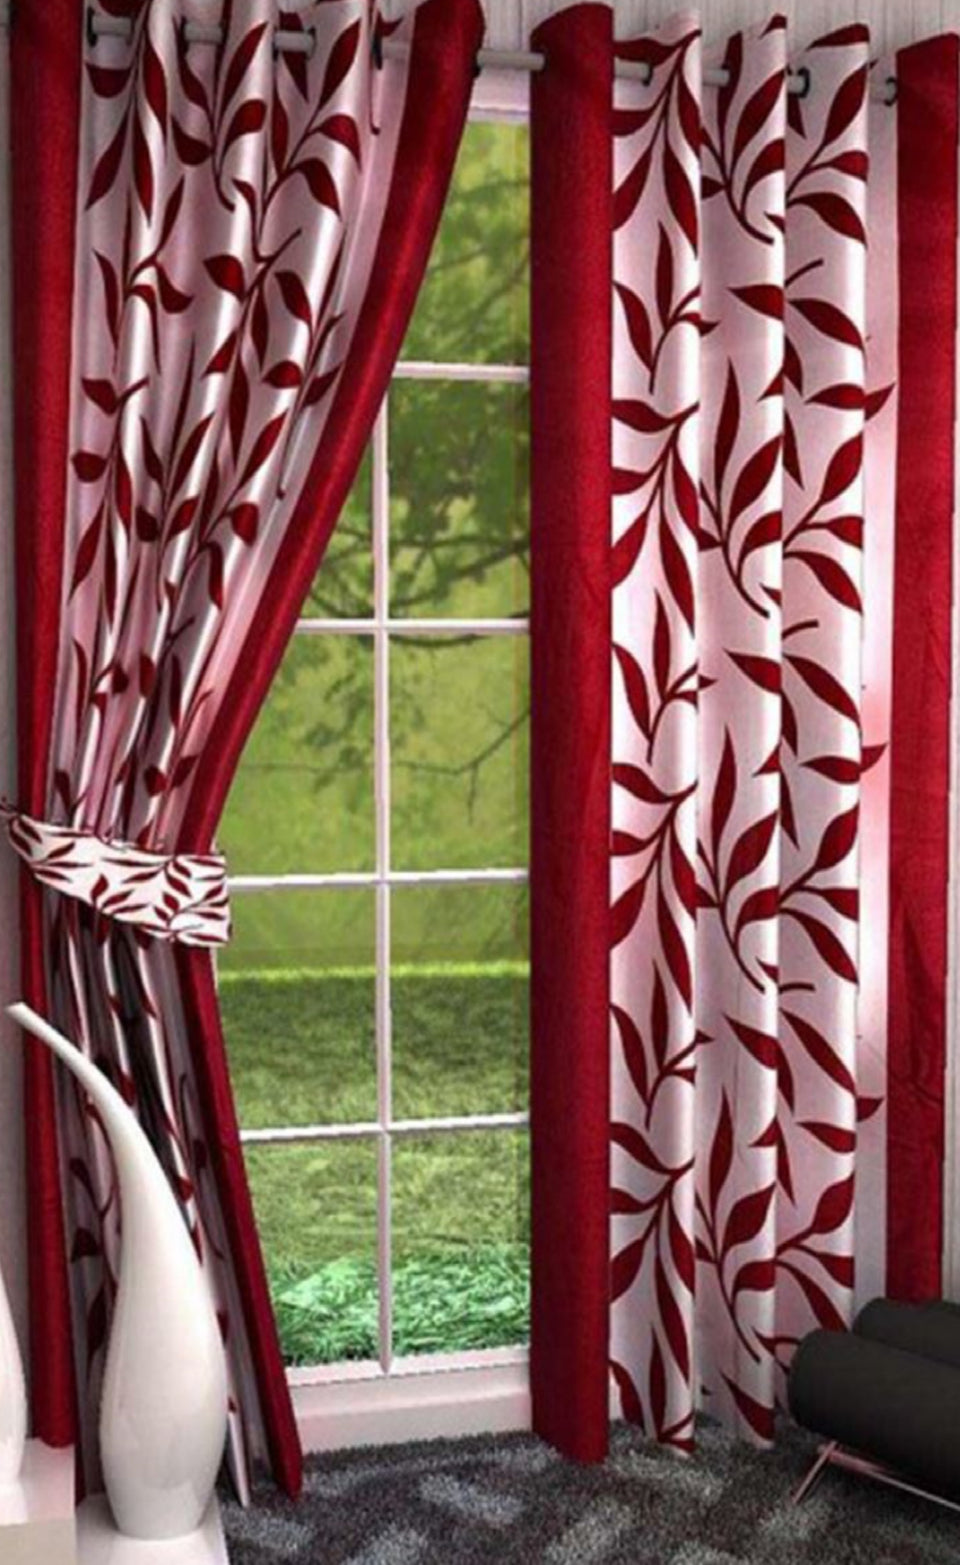 PRINTED DOOR CURTAINS - BABBALBUY